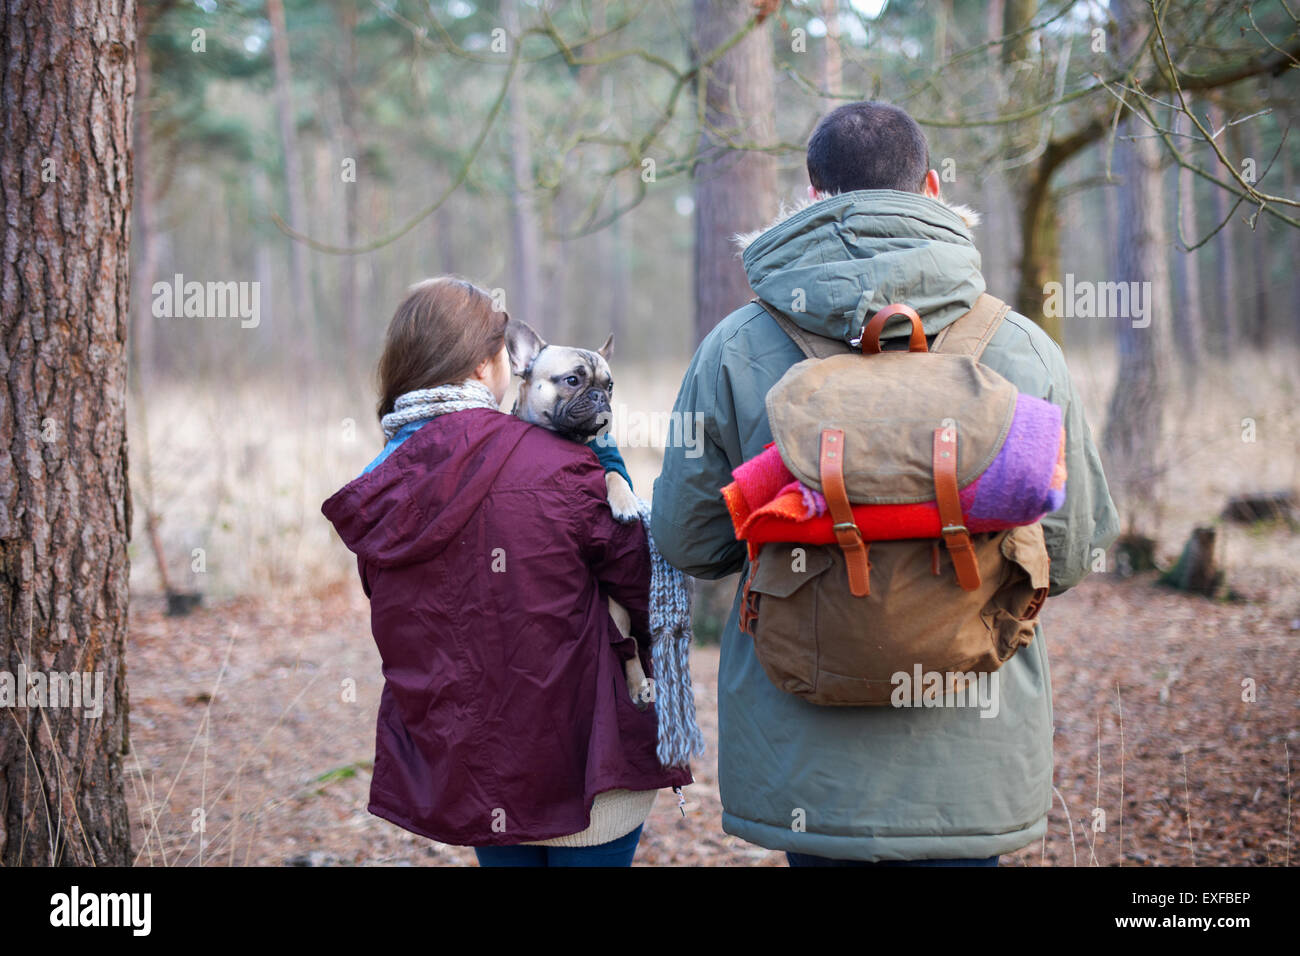 Young couple hiking together in forest - Stock Image